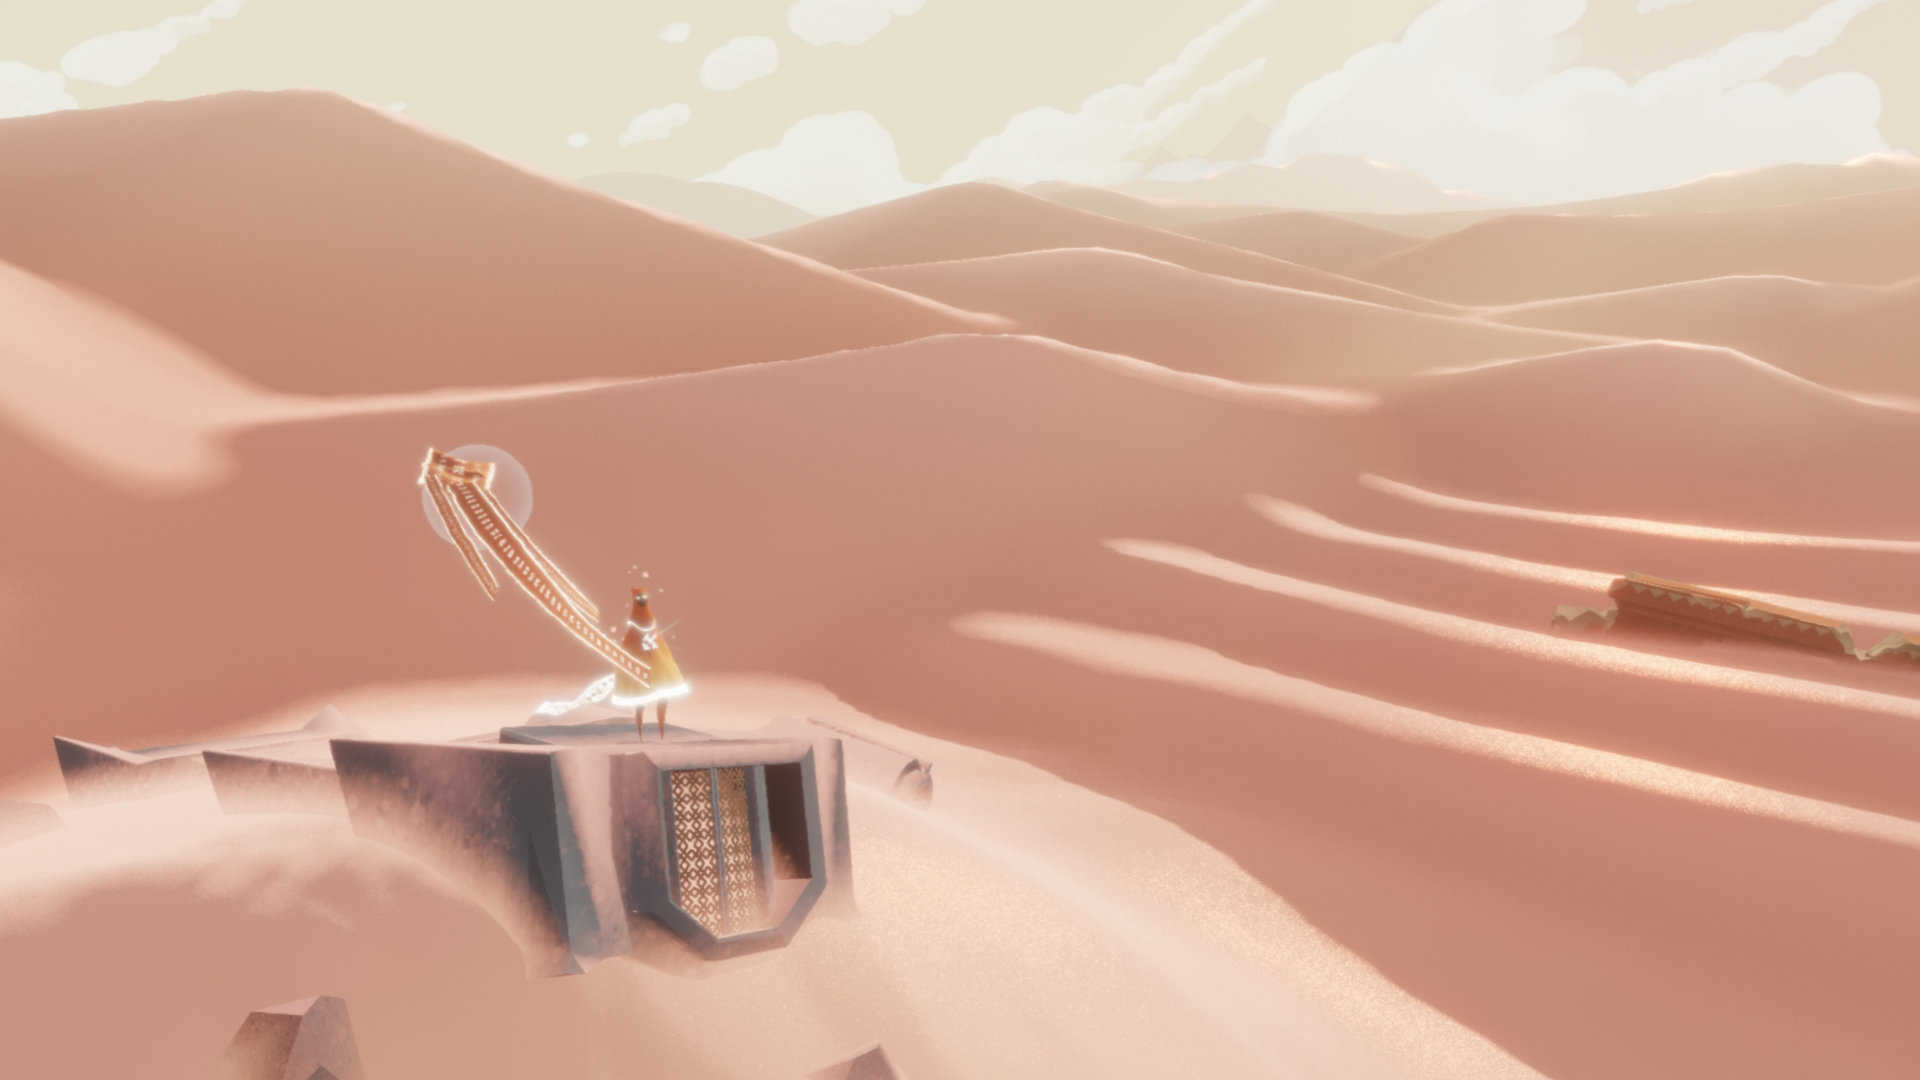 Marty Sliva Snapshot Journey playing with a stranger Thatgamecompany adventure